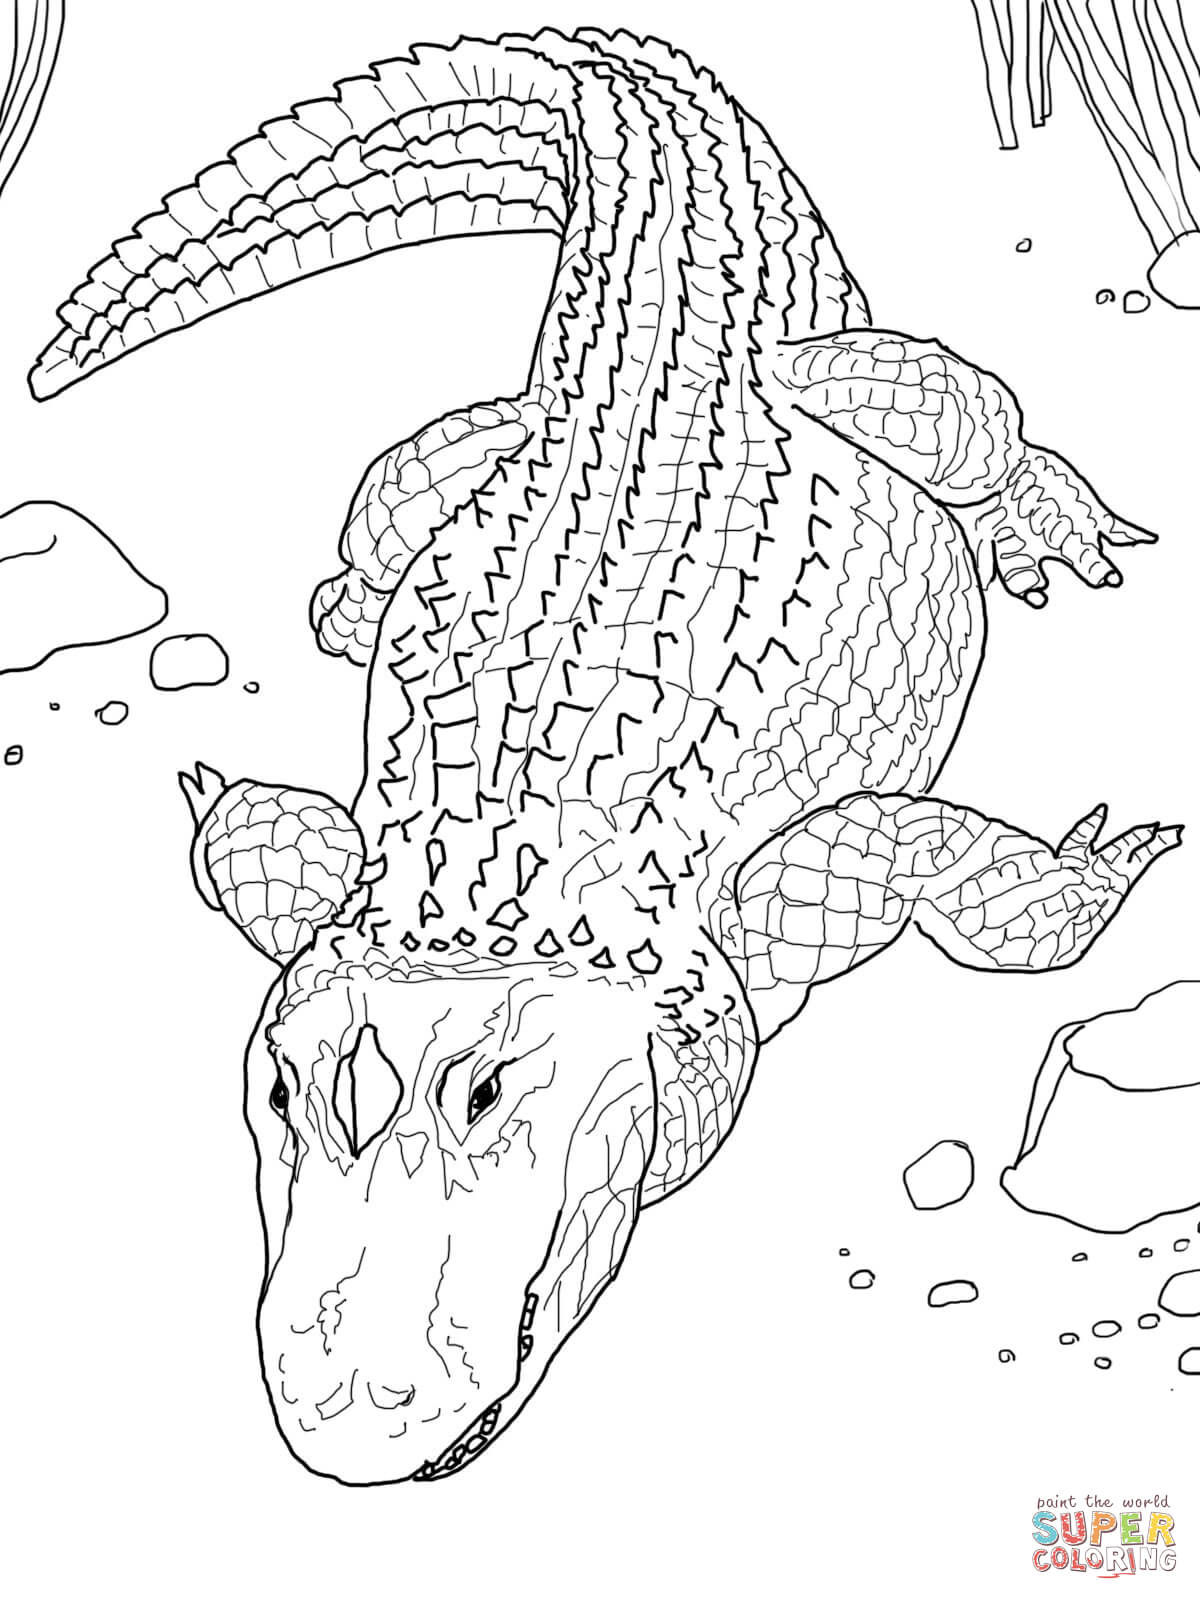 Realistic Alligator Drawing : realistic, alligator, drawing, American, Alligator, Common, Coloring, Printable, Pages